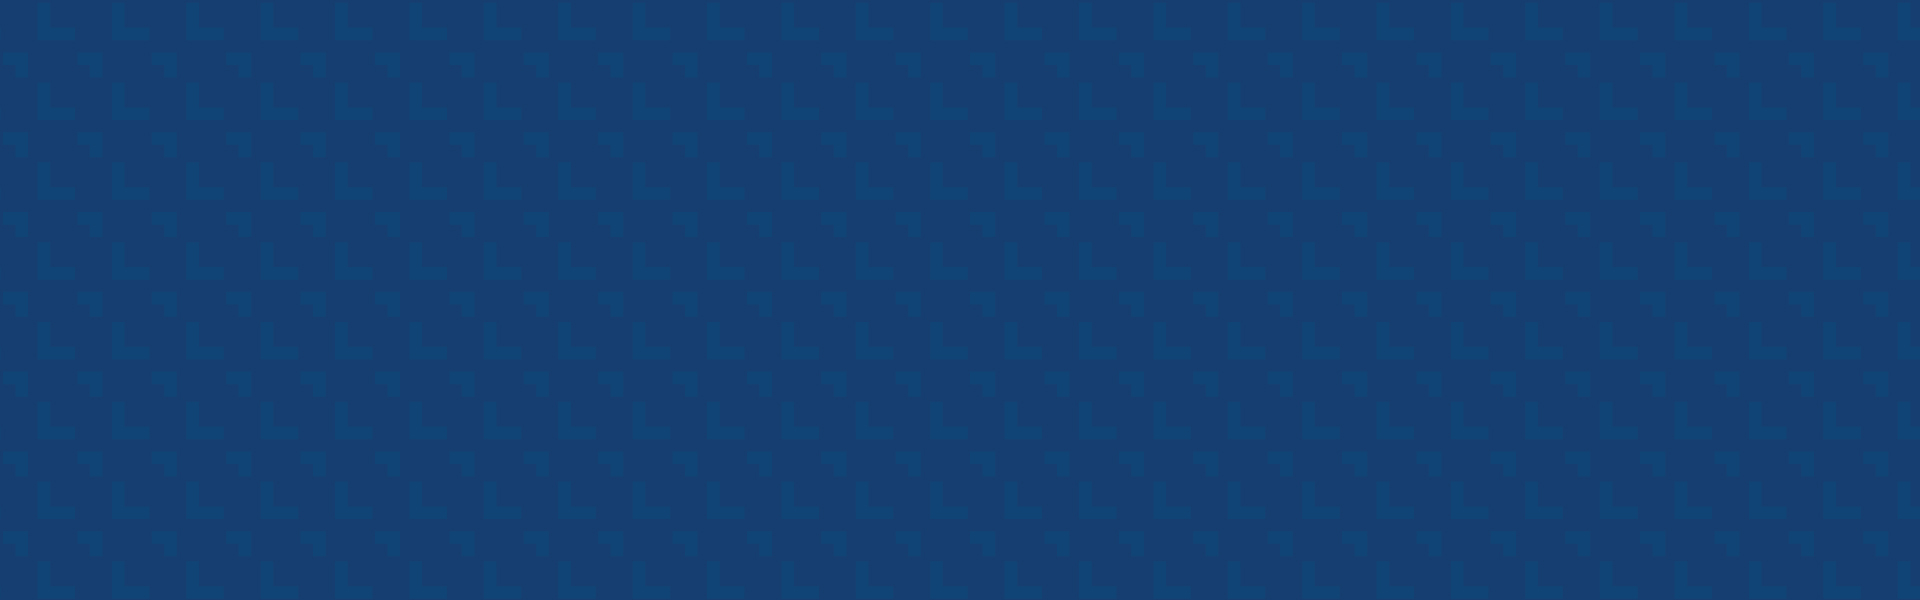 blue framing arrows banner